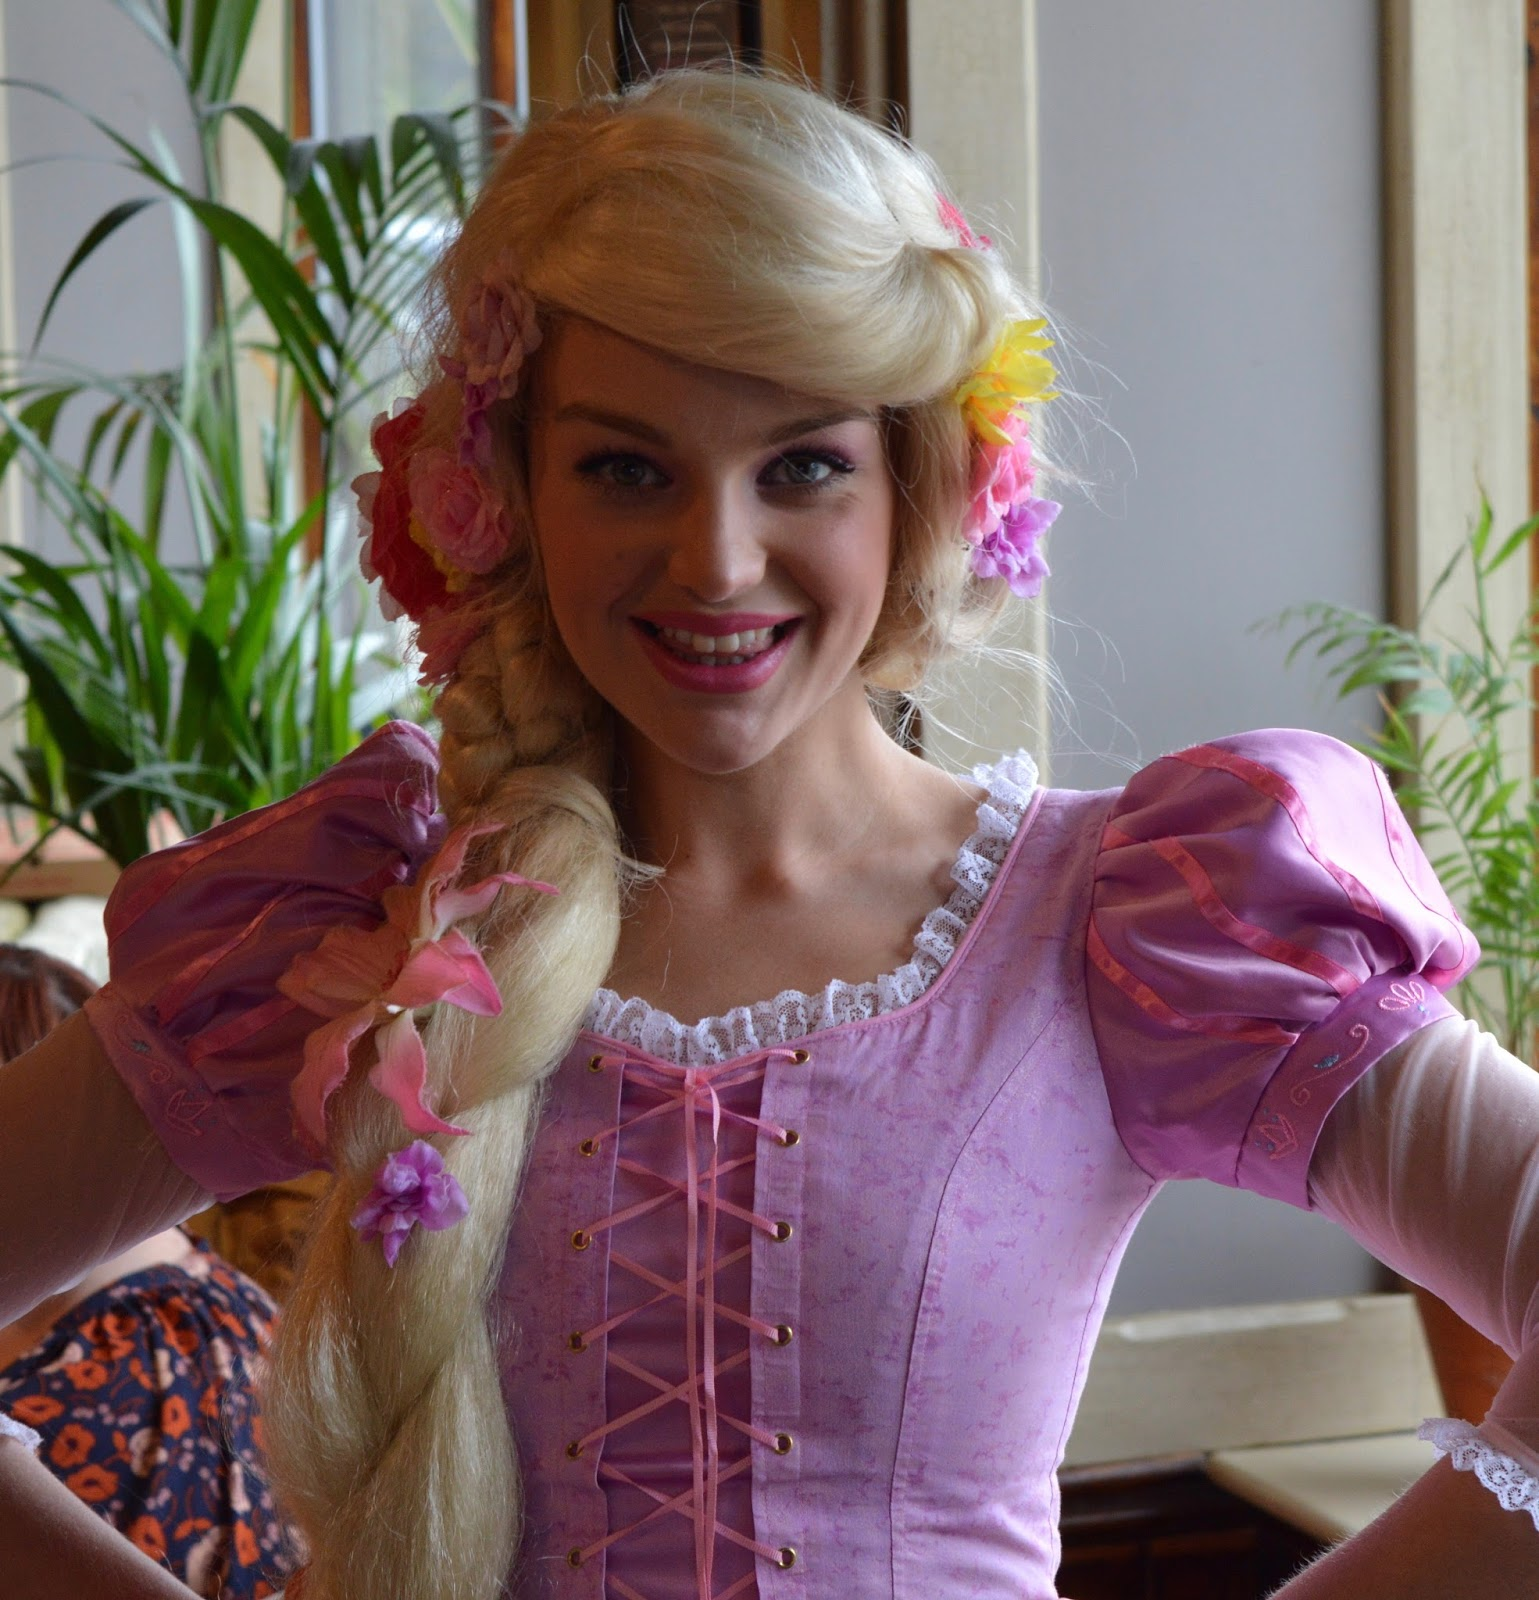 Kids Club Rapunzel at Liberty Brown, Sunderland